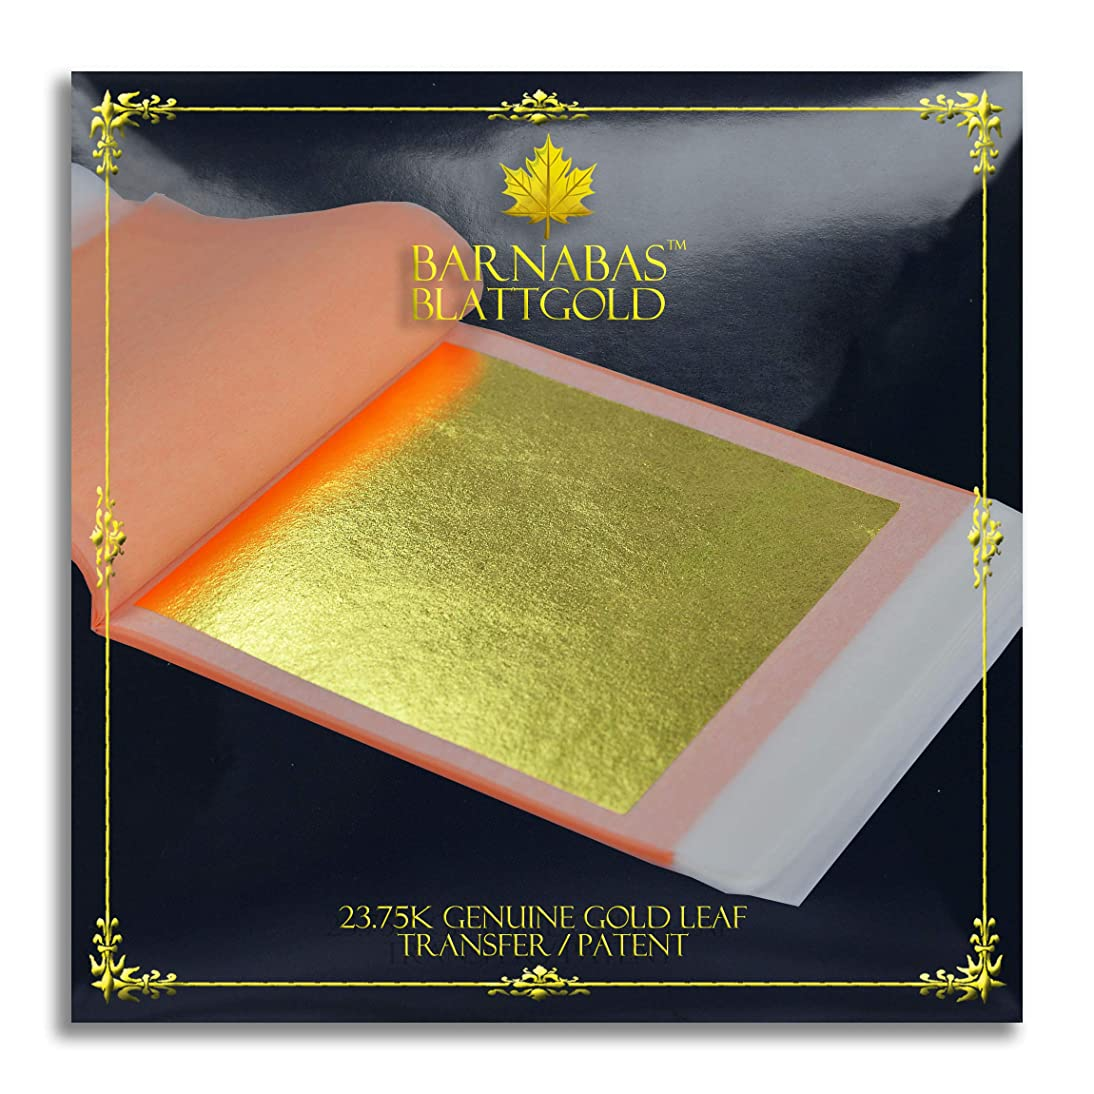 Genuine Gold Leaf Sheets 23.75k - by Barnabas Blattgold - 3.1 inches - 25 Sheets Booklet - Transfer Patent Leaf